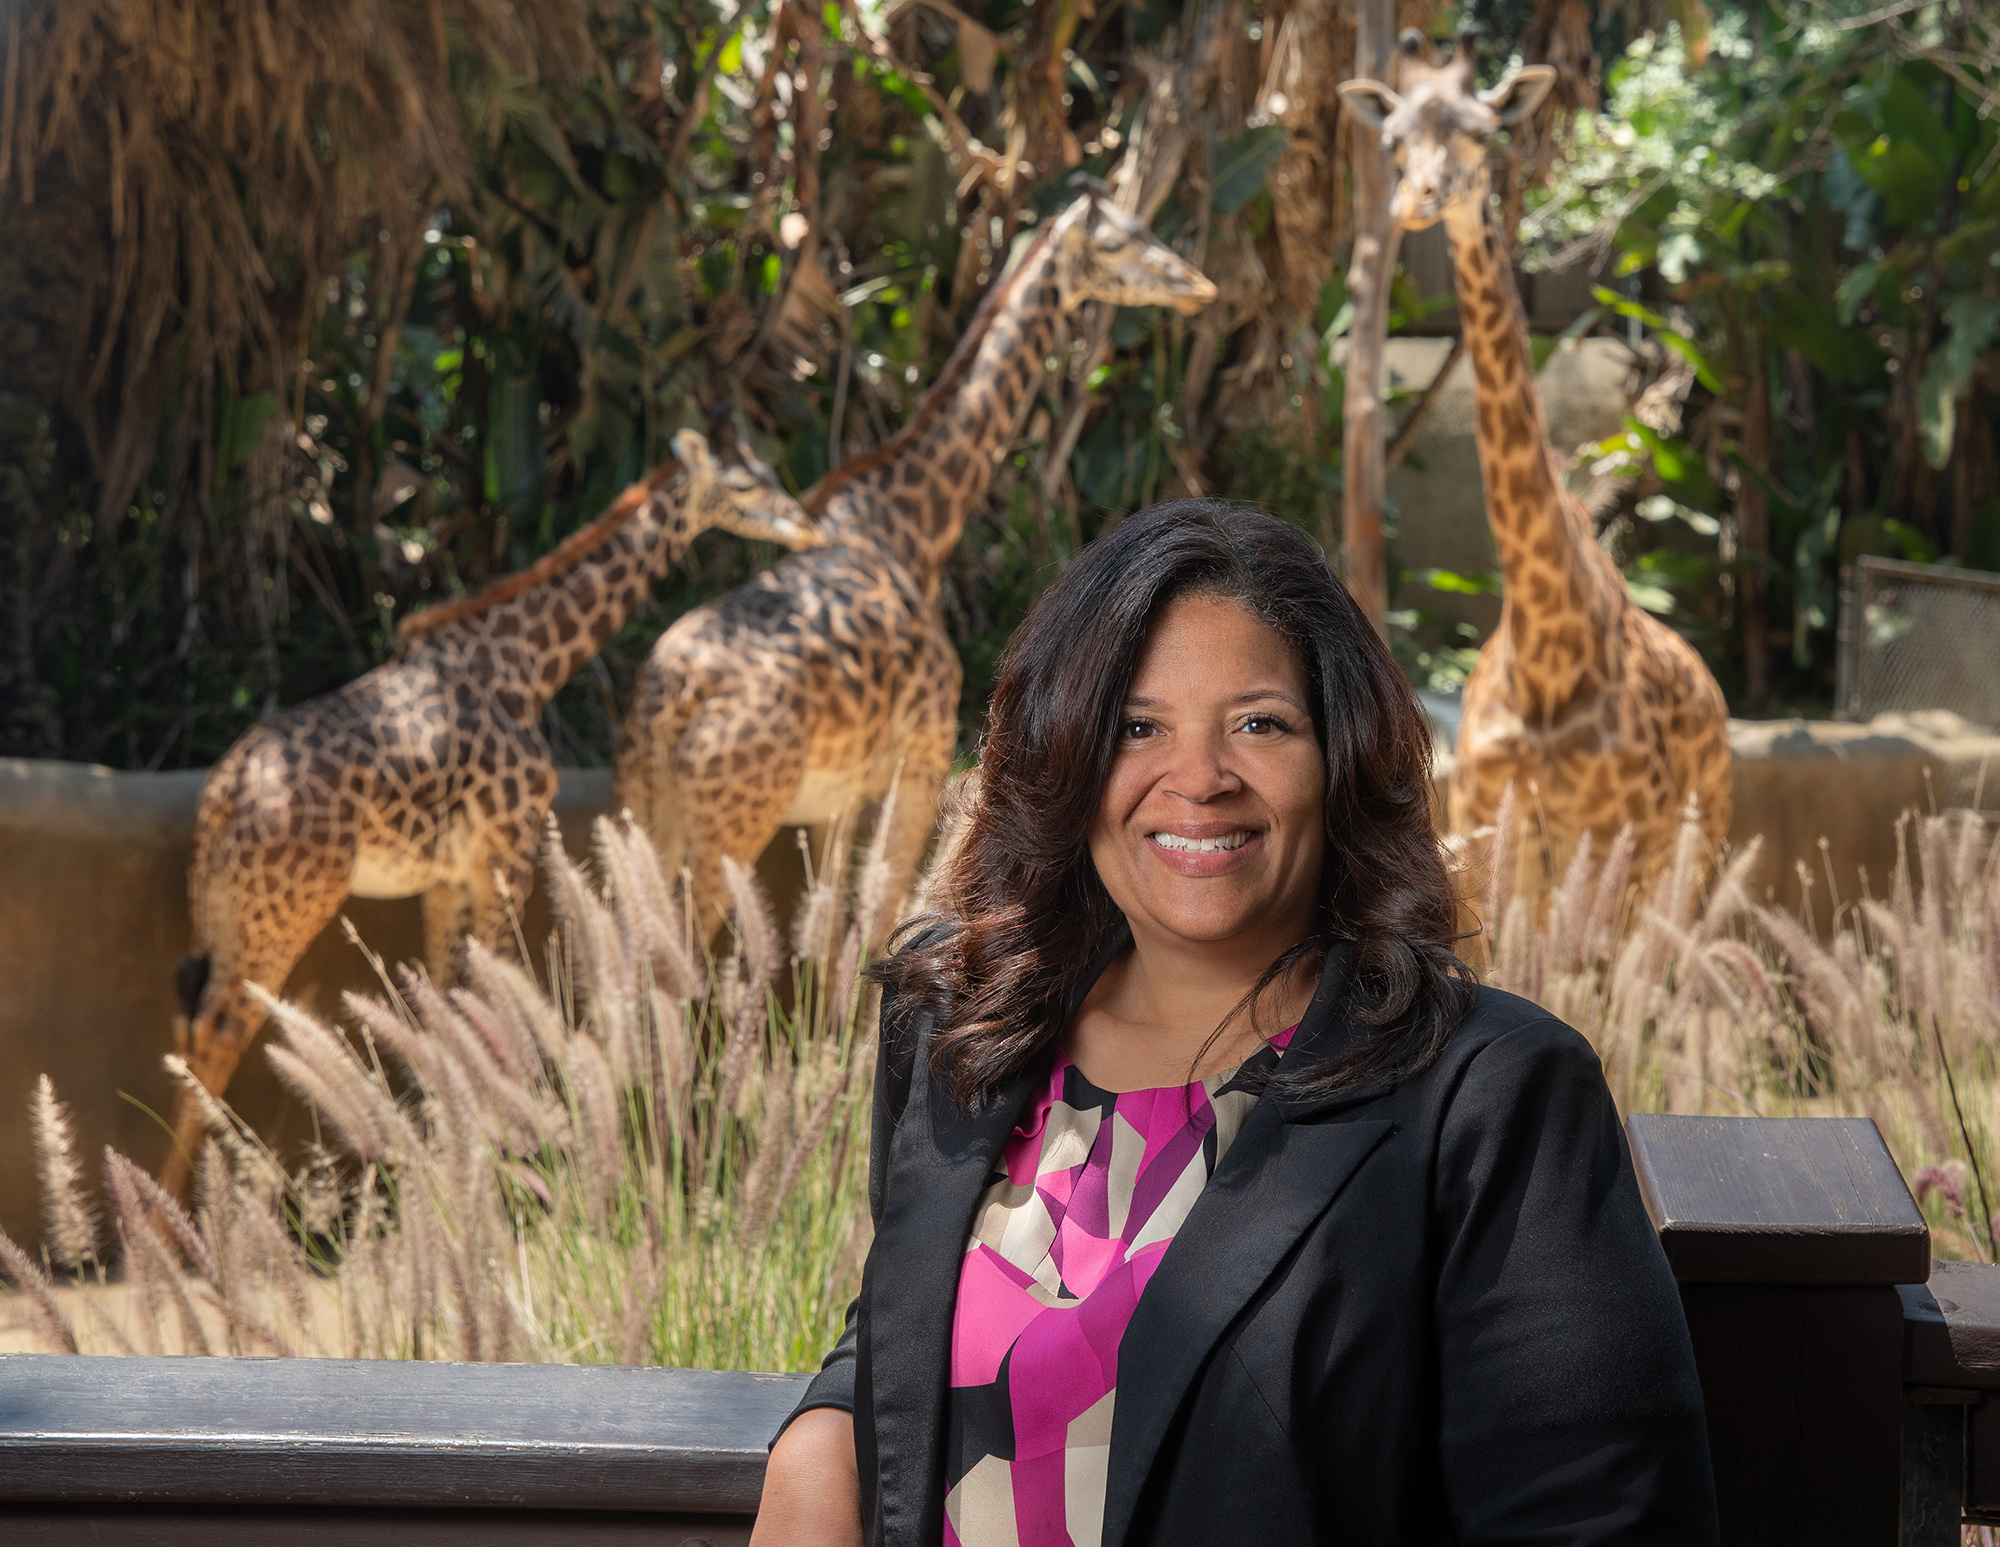 Zoo Update with Denise Verret, Zoo Director and CEO